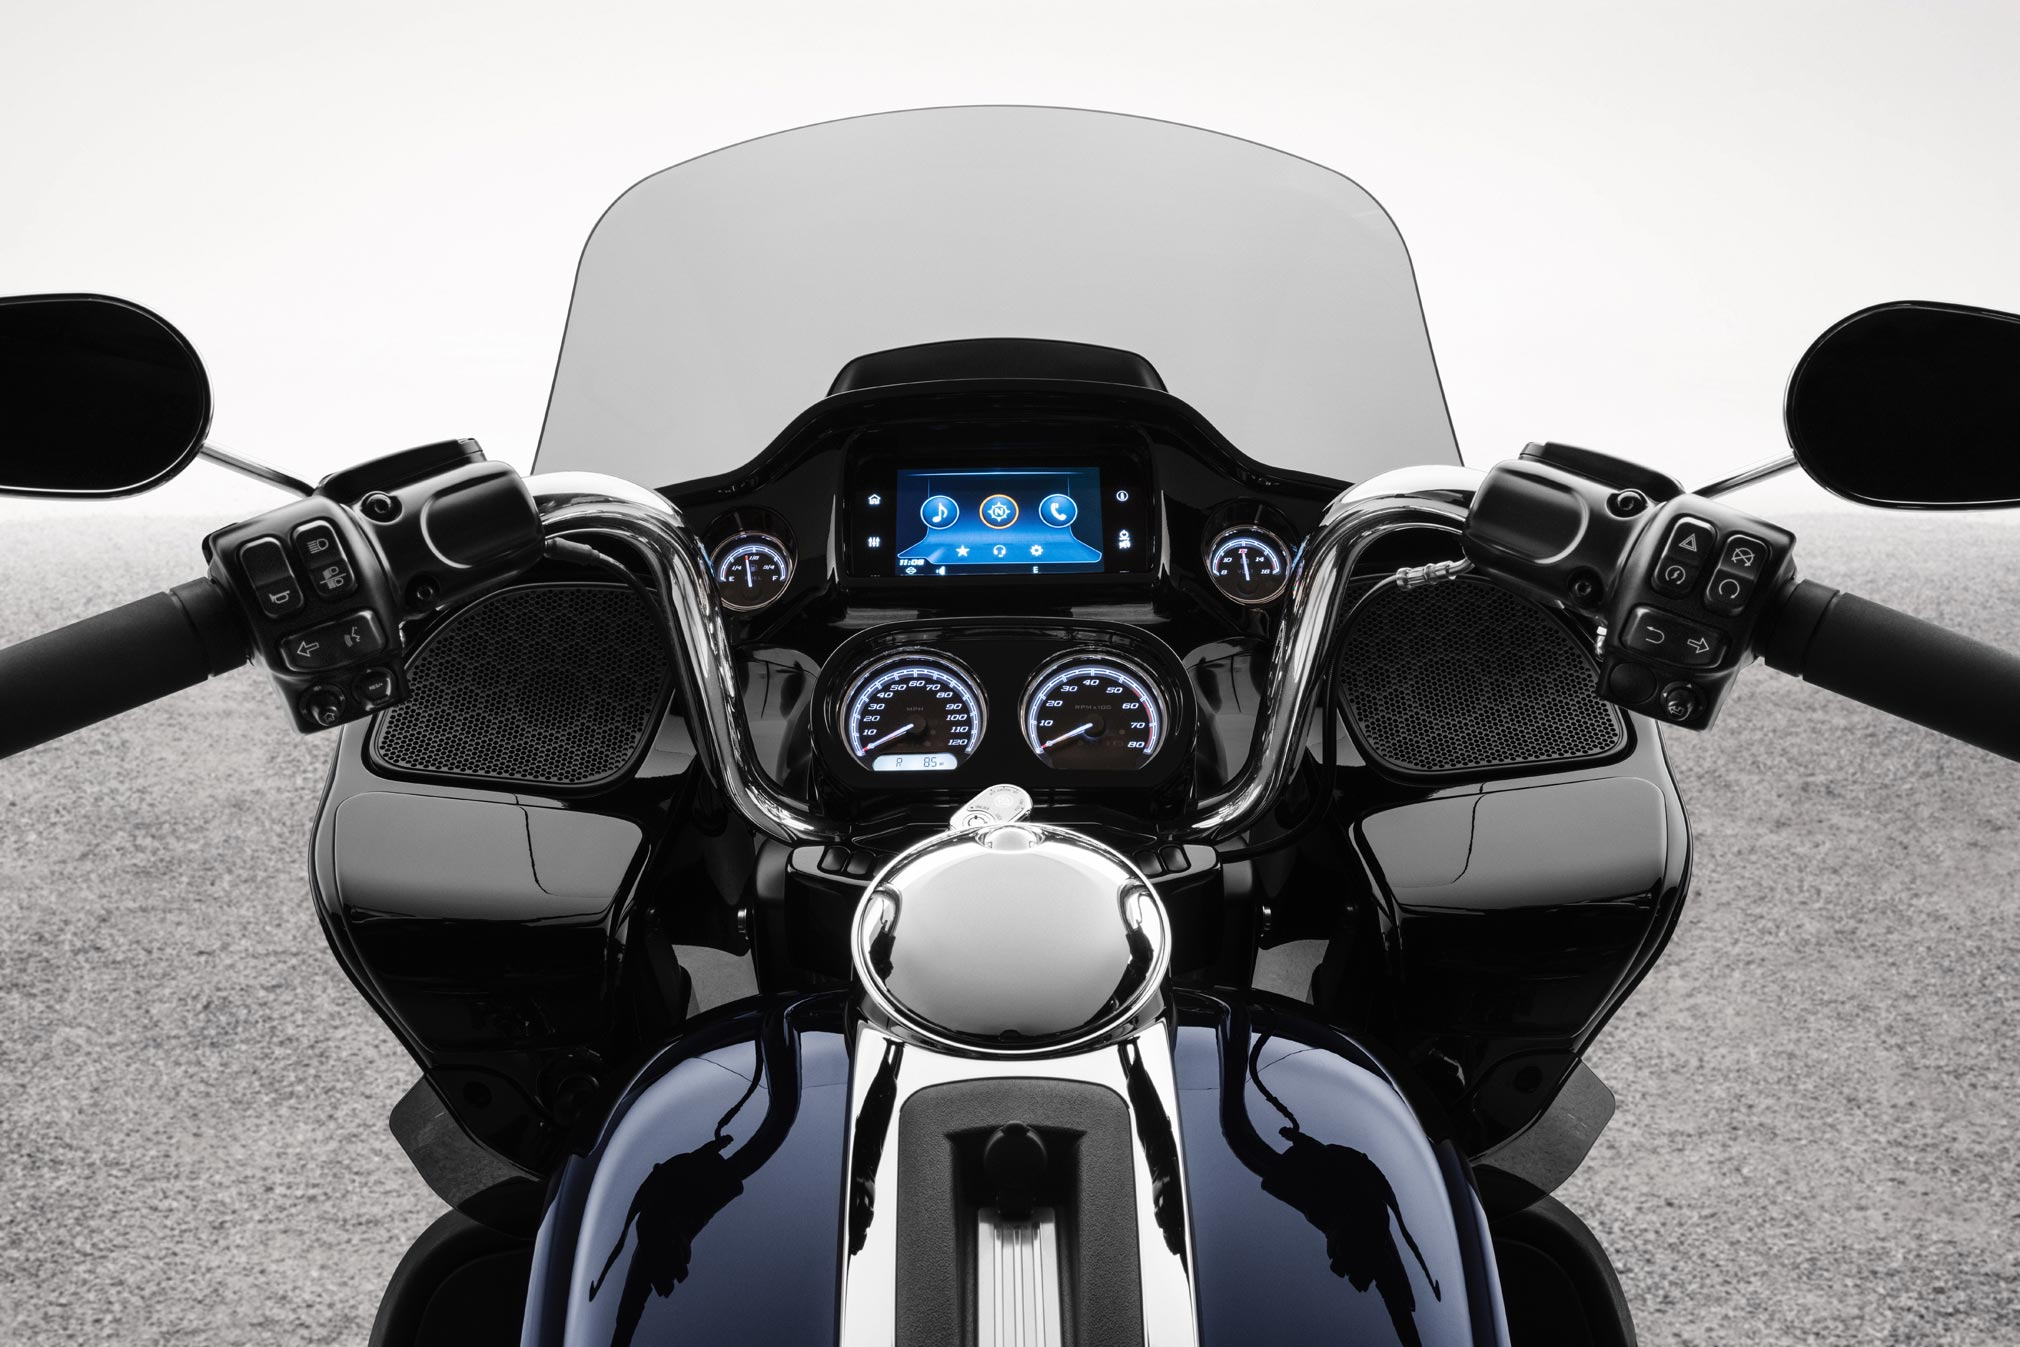 2020 Harley-Davidson Road Glide Limited Guide • Total Motorcycle